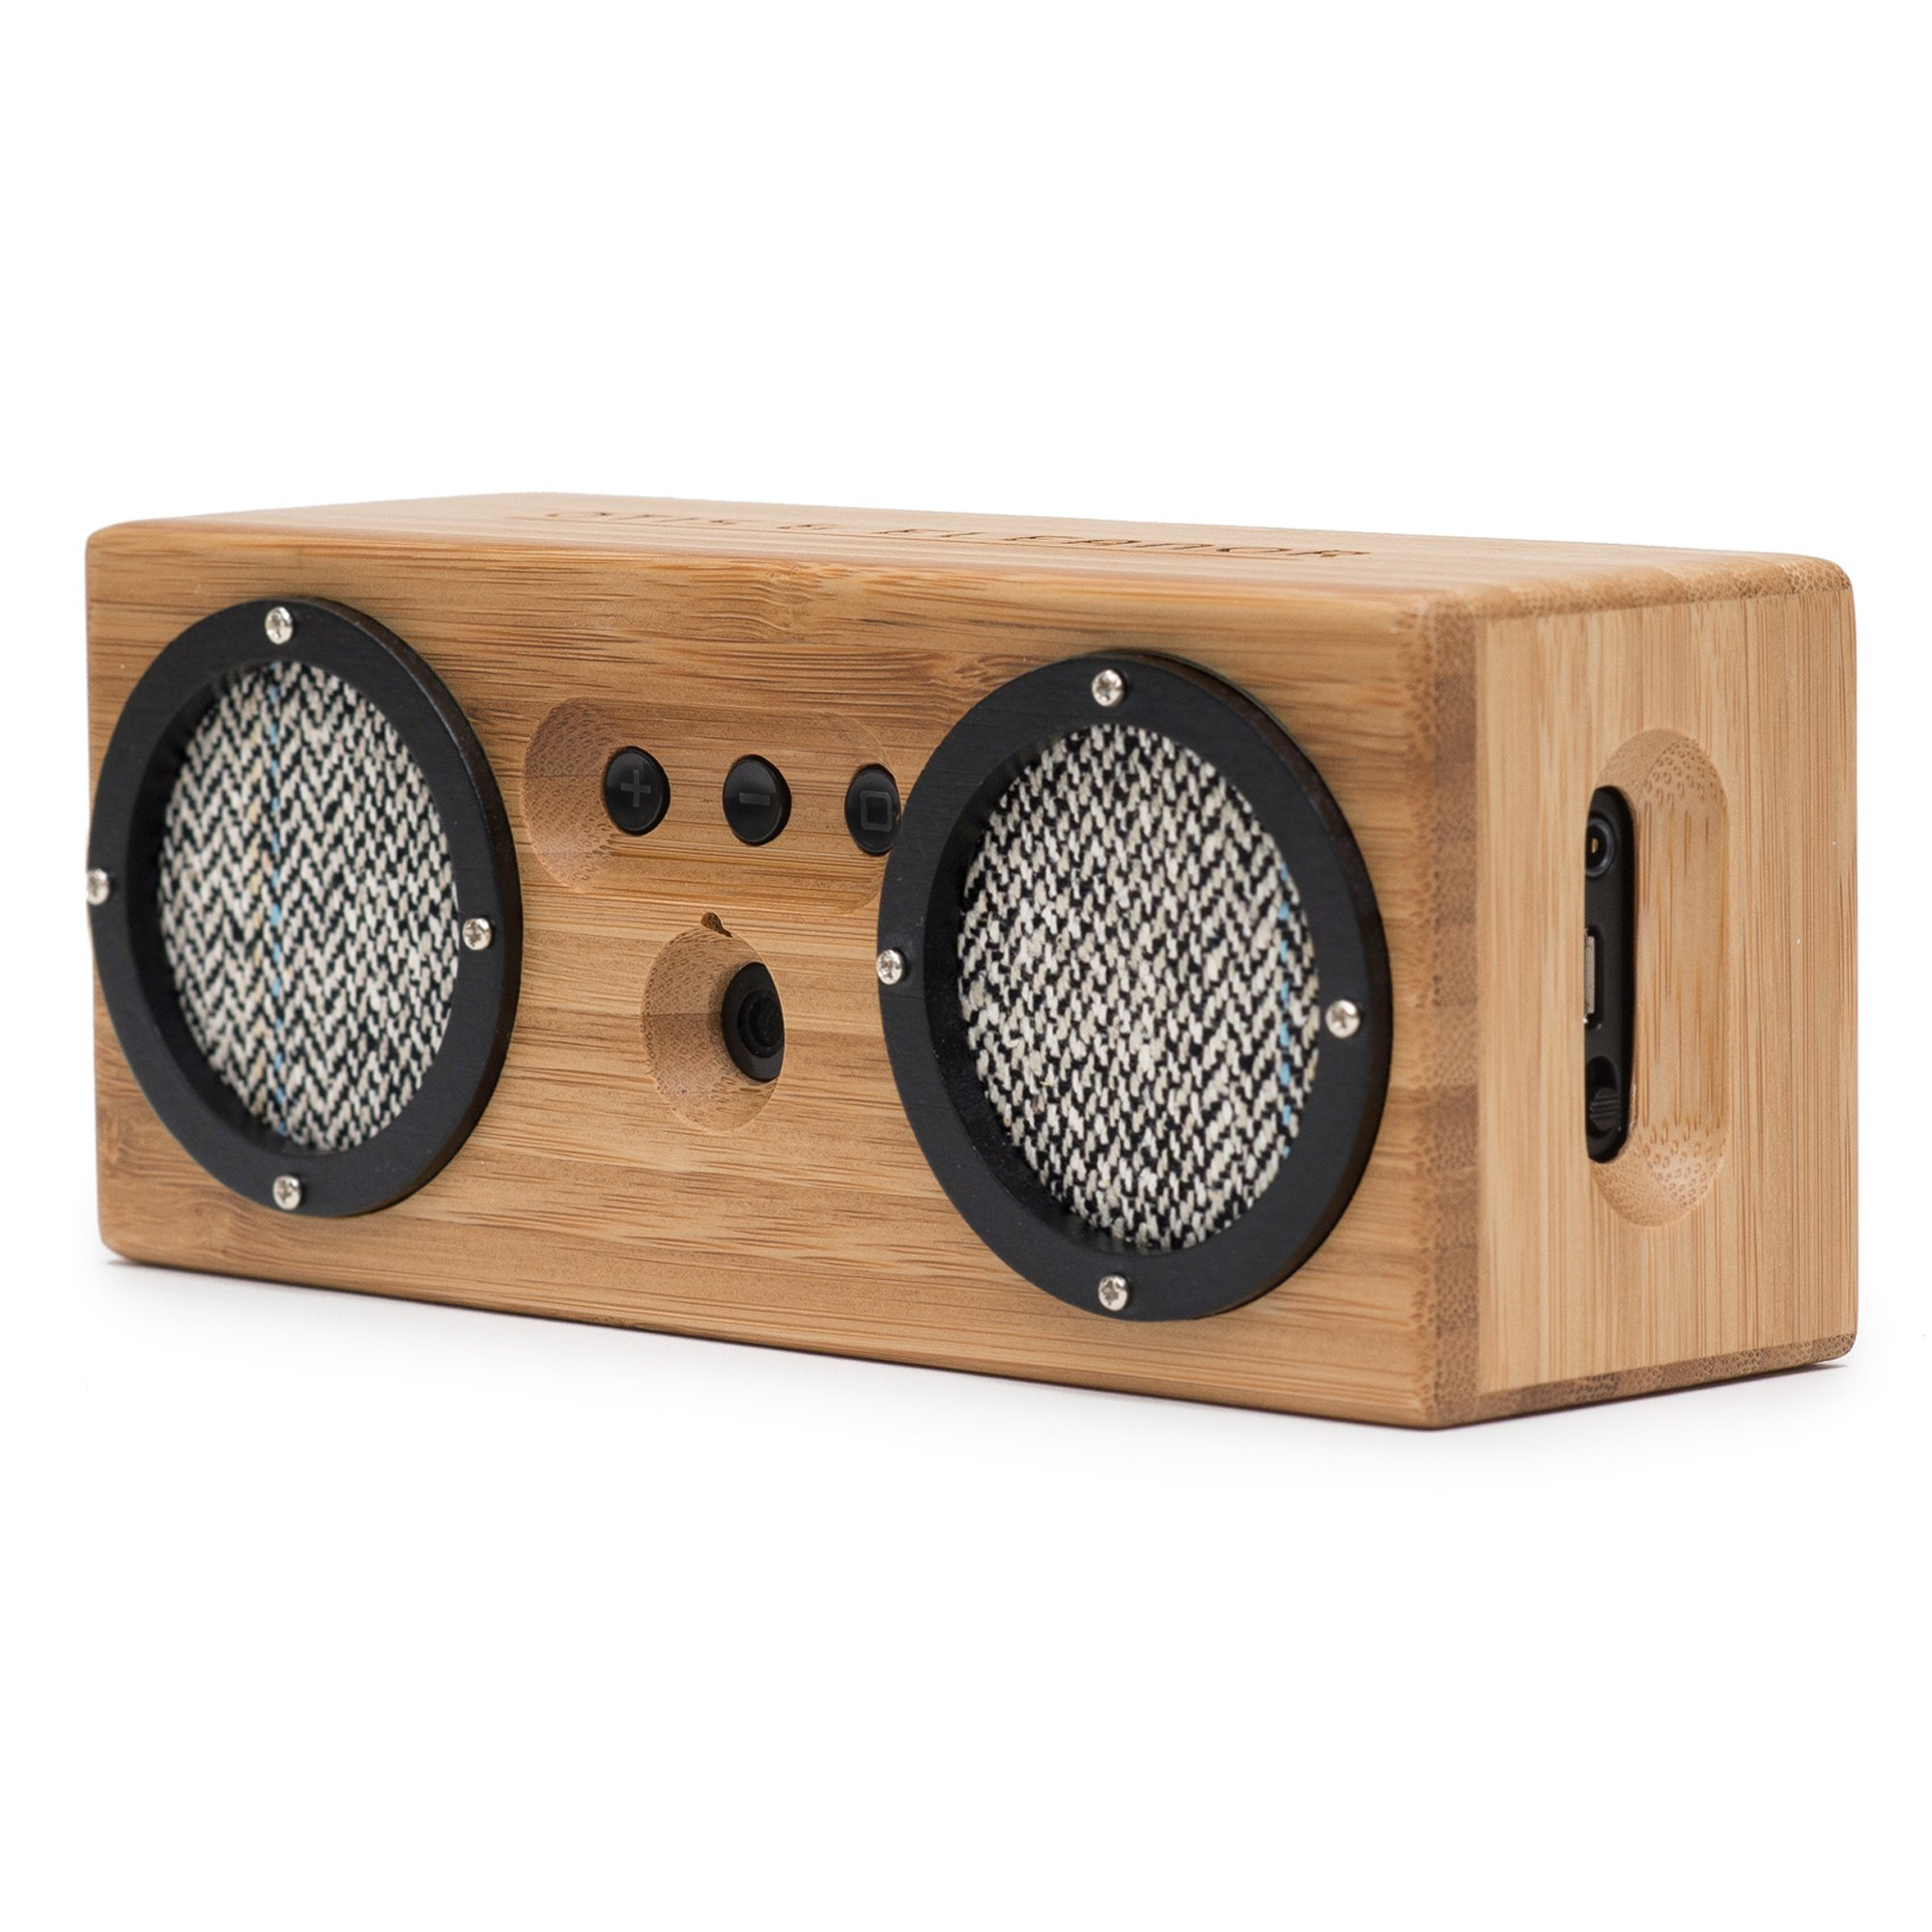 Bongo Wood Bluetooth Speakers, Retro Handcrafted Bamboo Portable Wireless Speaker for Travel, Home, Shower, Beach, Kitchen, Outdoors, Loud Bass with Dual Passive Woofers | Vintage Black & White